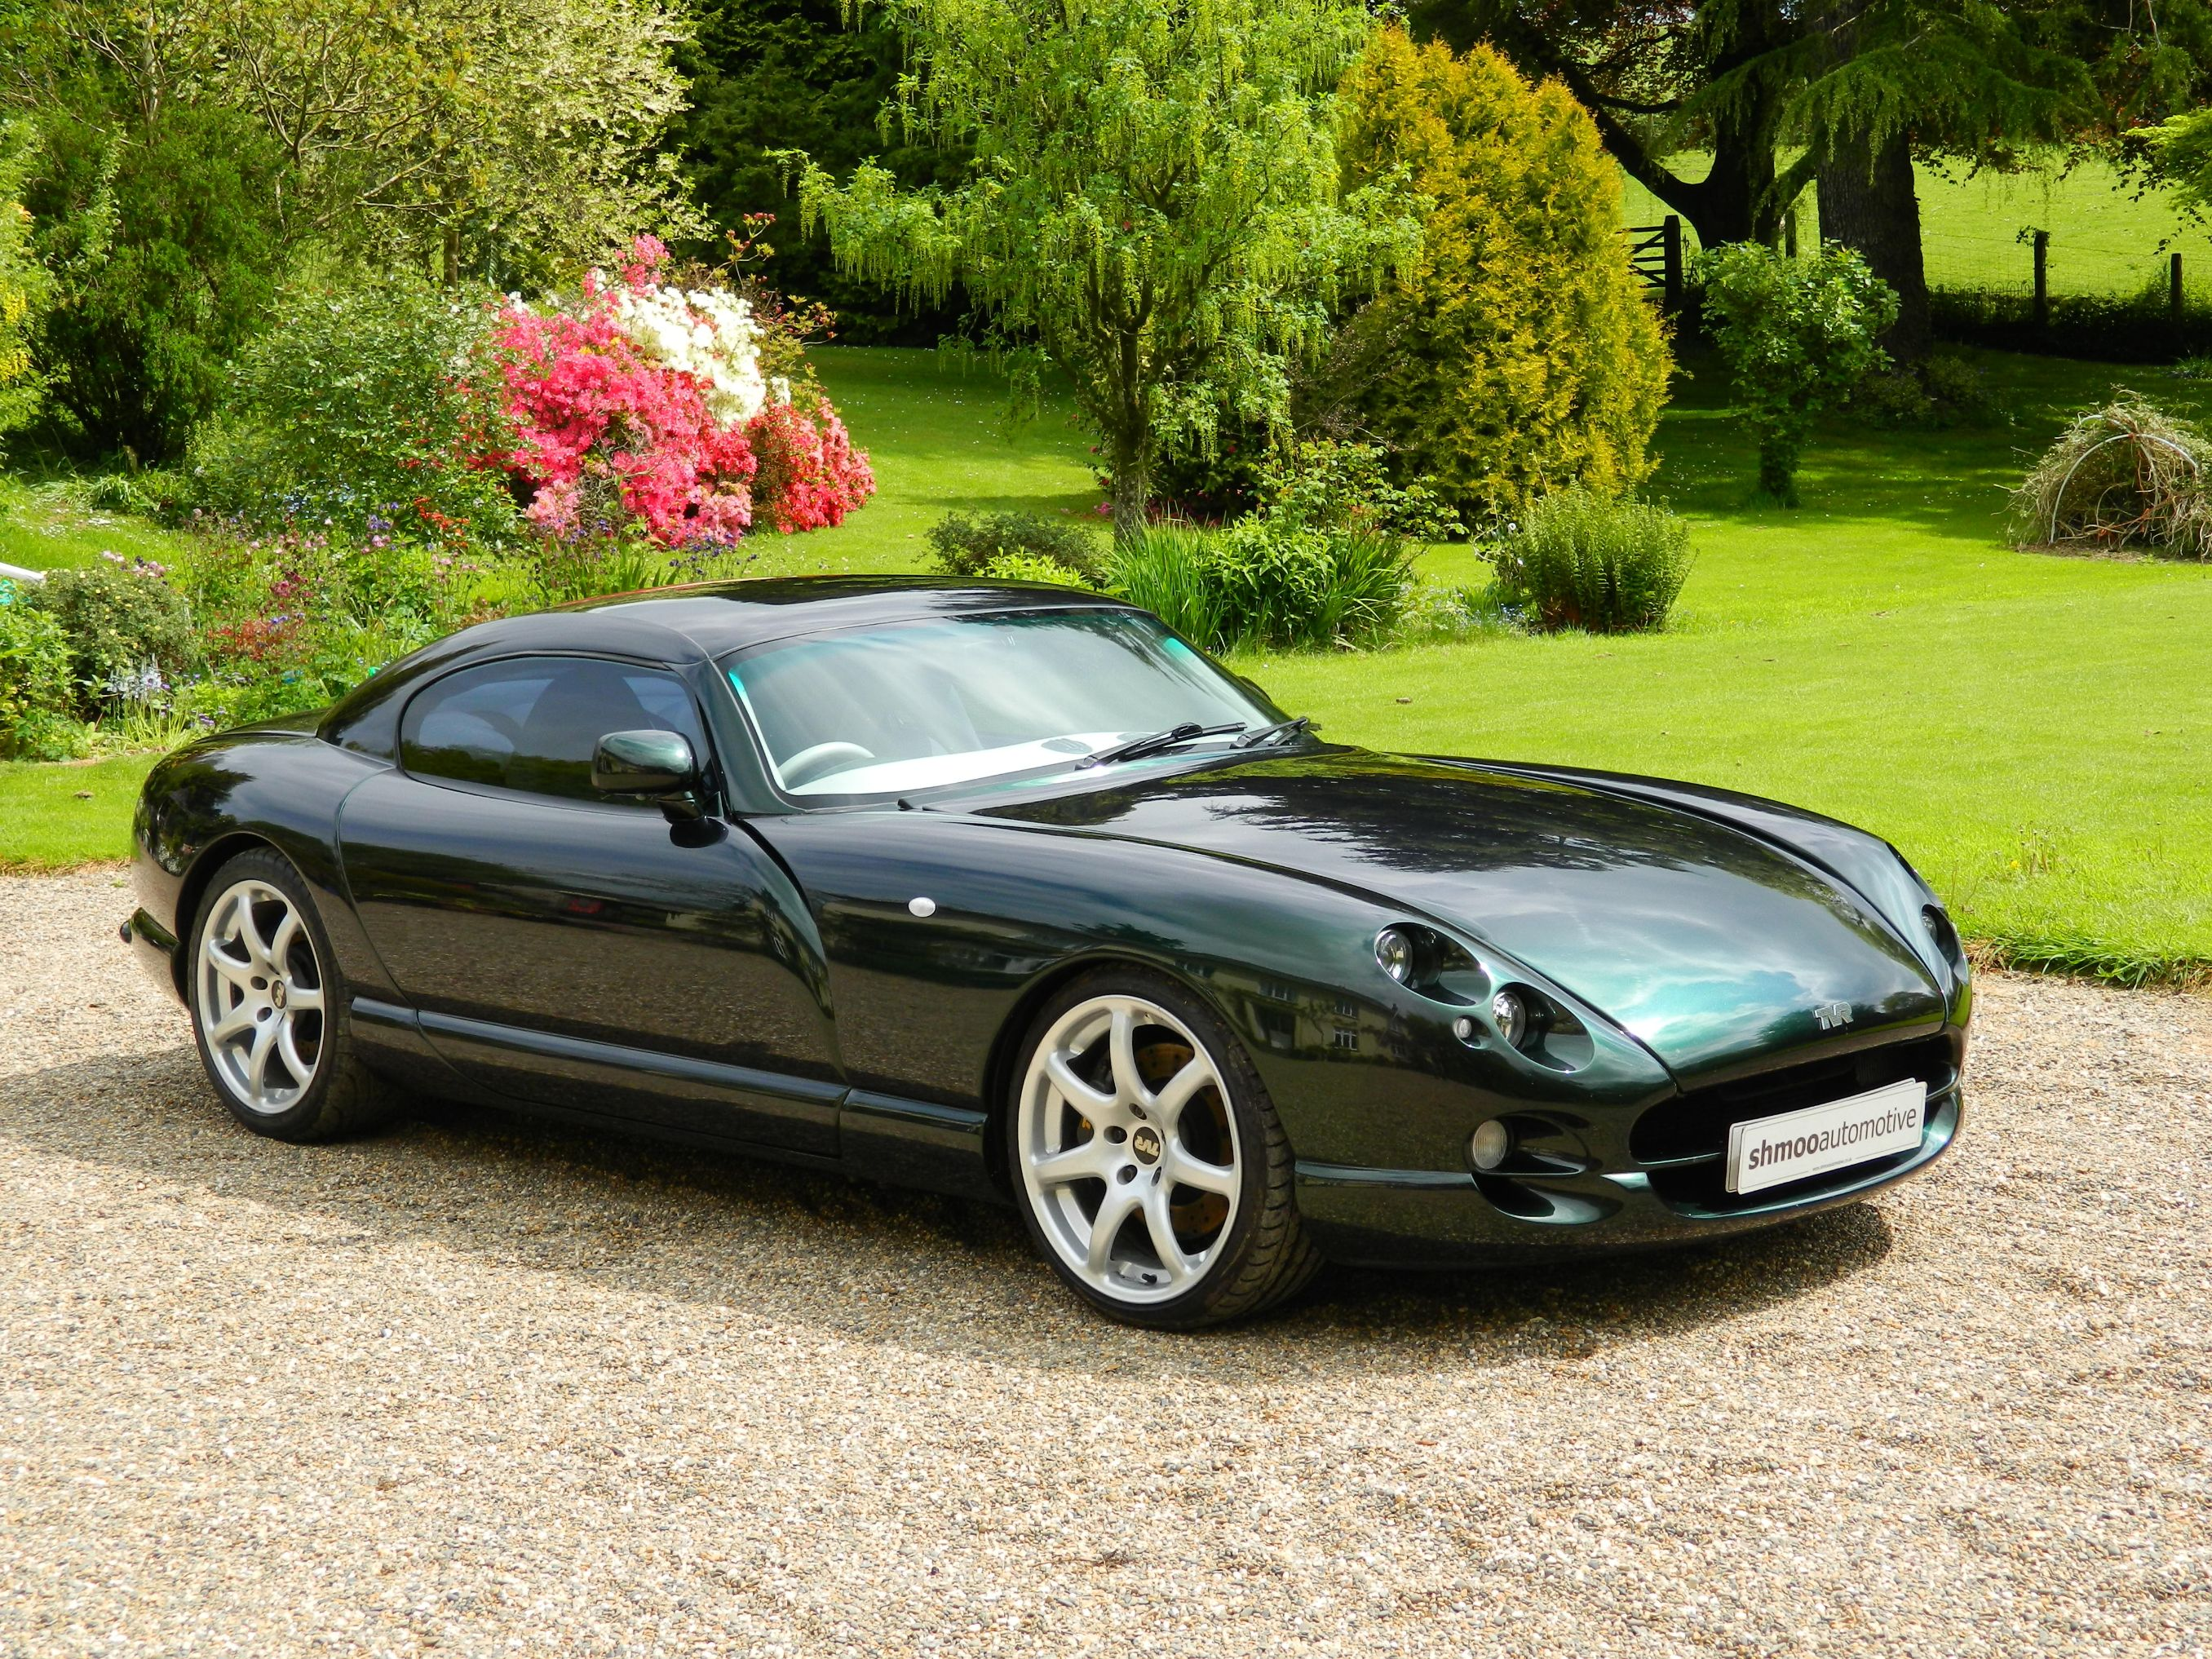 Tvr Cerbera 4 5 Beautiful Car Shmoo Automotive